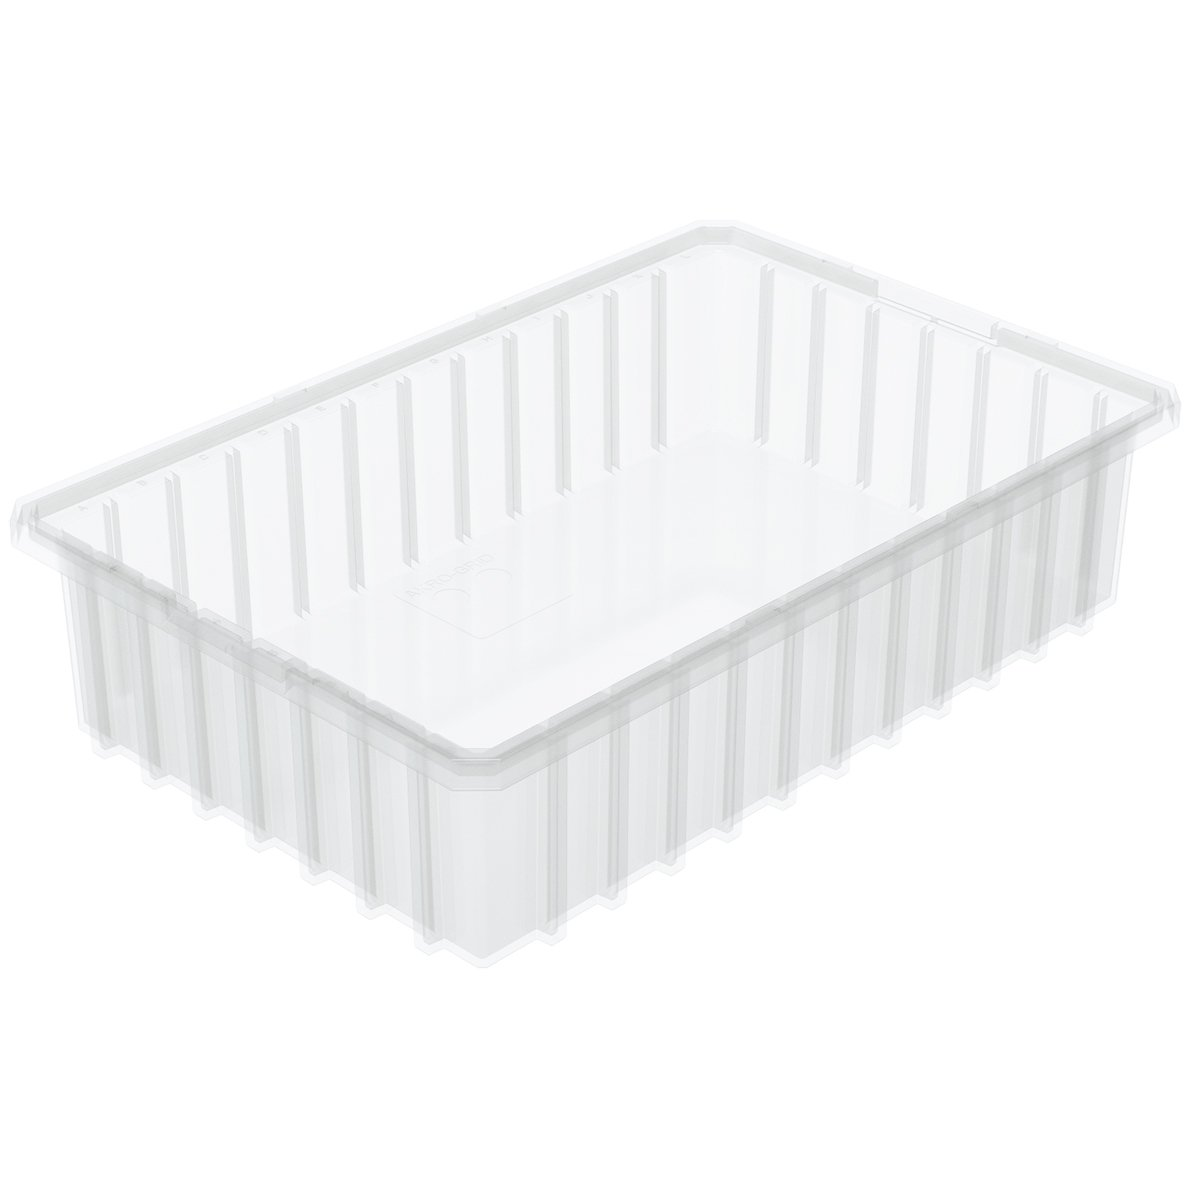 Akro-Mils 33164 16-1/2-Inch L by 10-7/8-Inch W by 4-Inch H Akro-Grid Slotted Divider Plastic Tote Box, Clear, 12-Pack